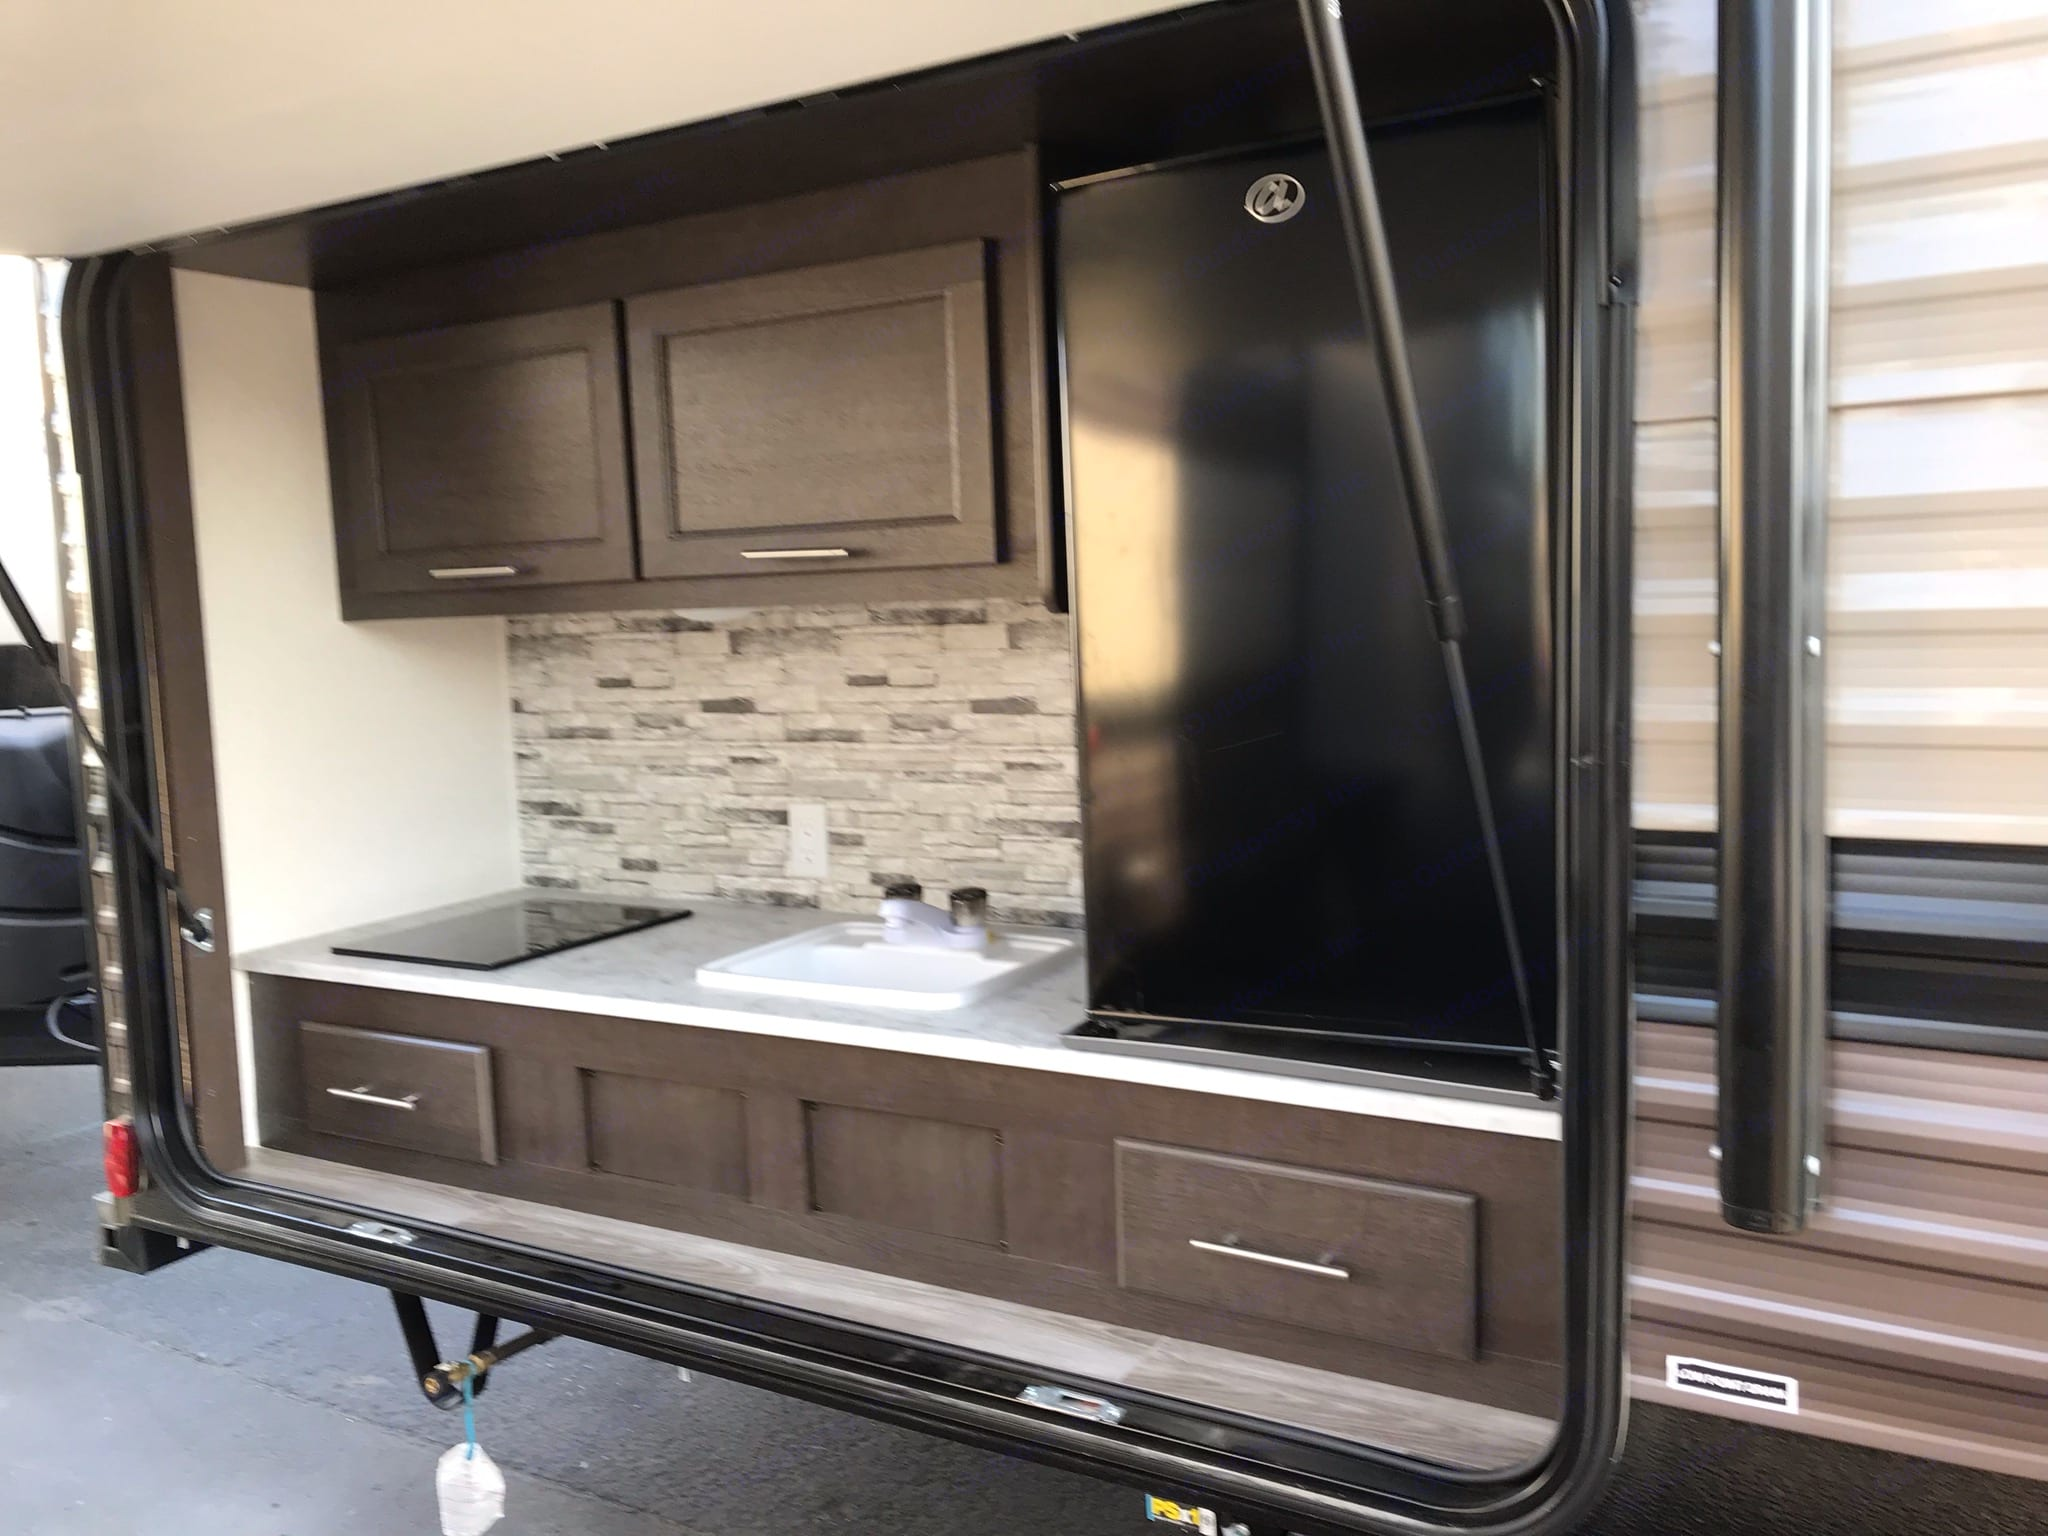 2nd fridge out door kitchen is a plus!. Forest River Wildwood X-Lite 2020